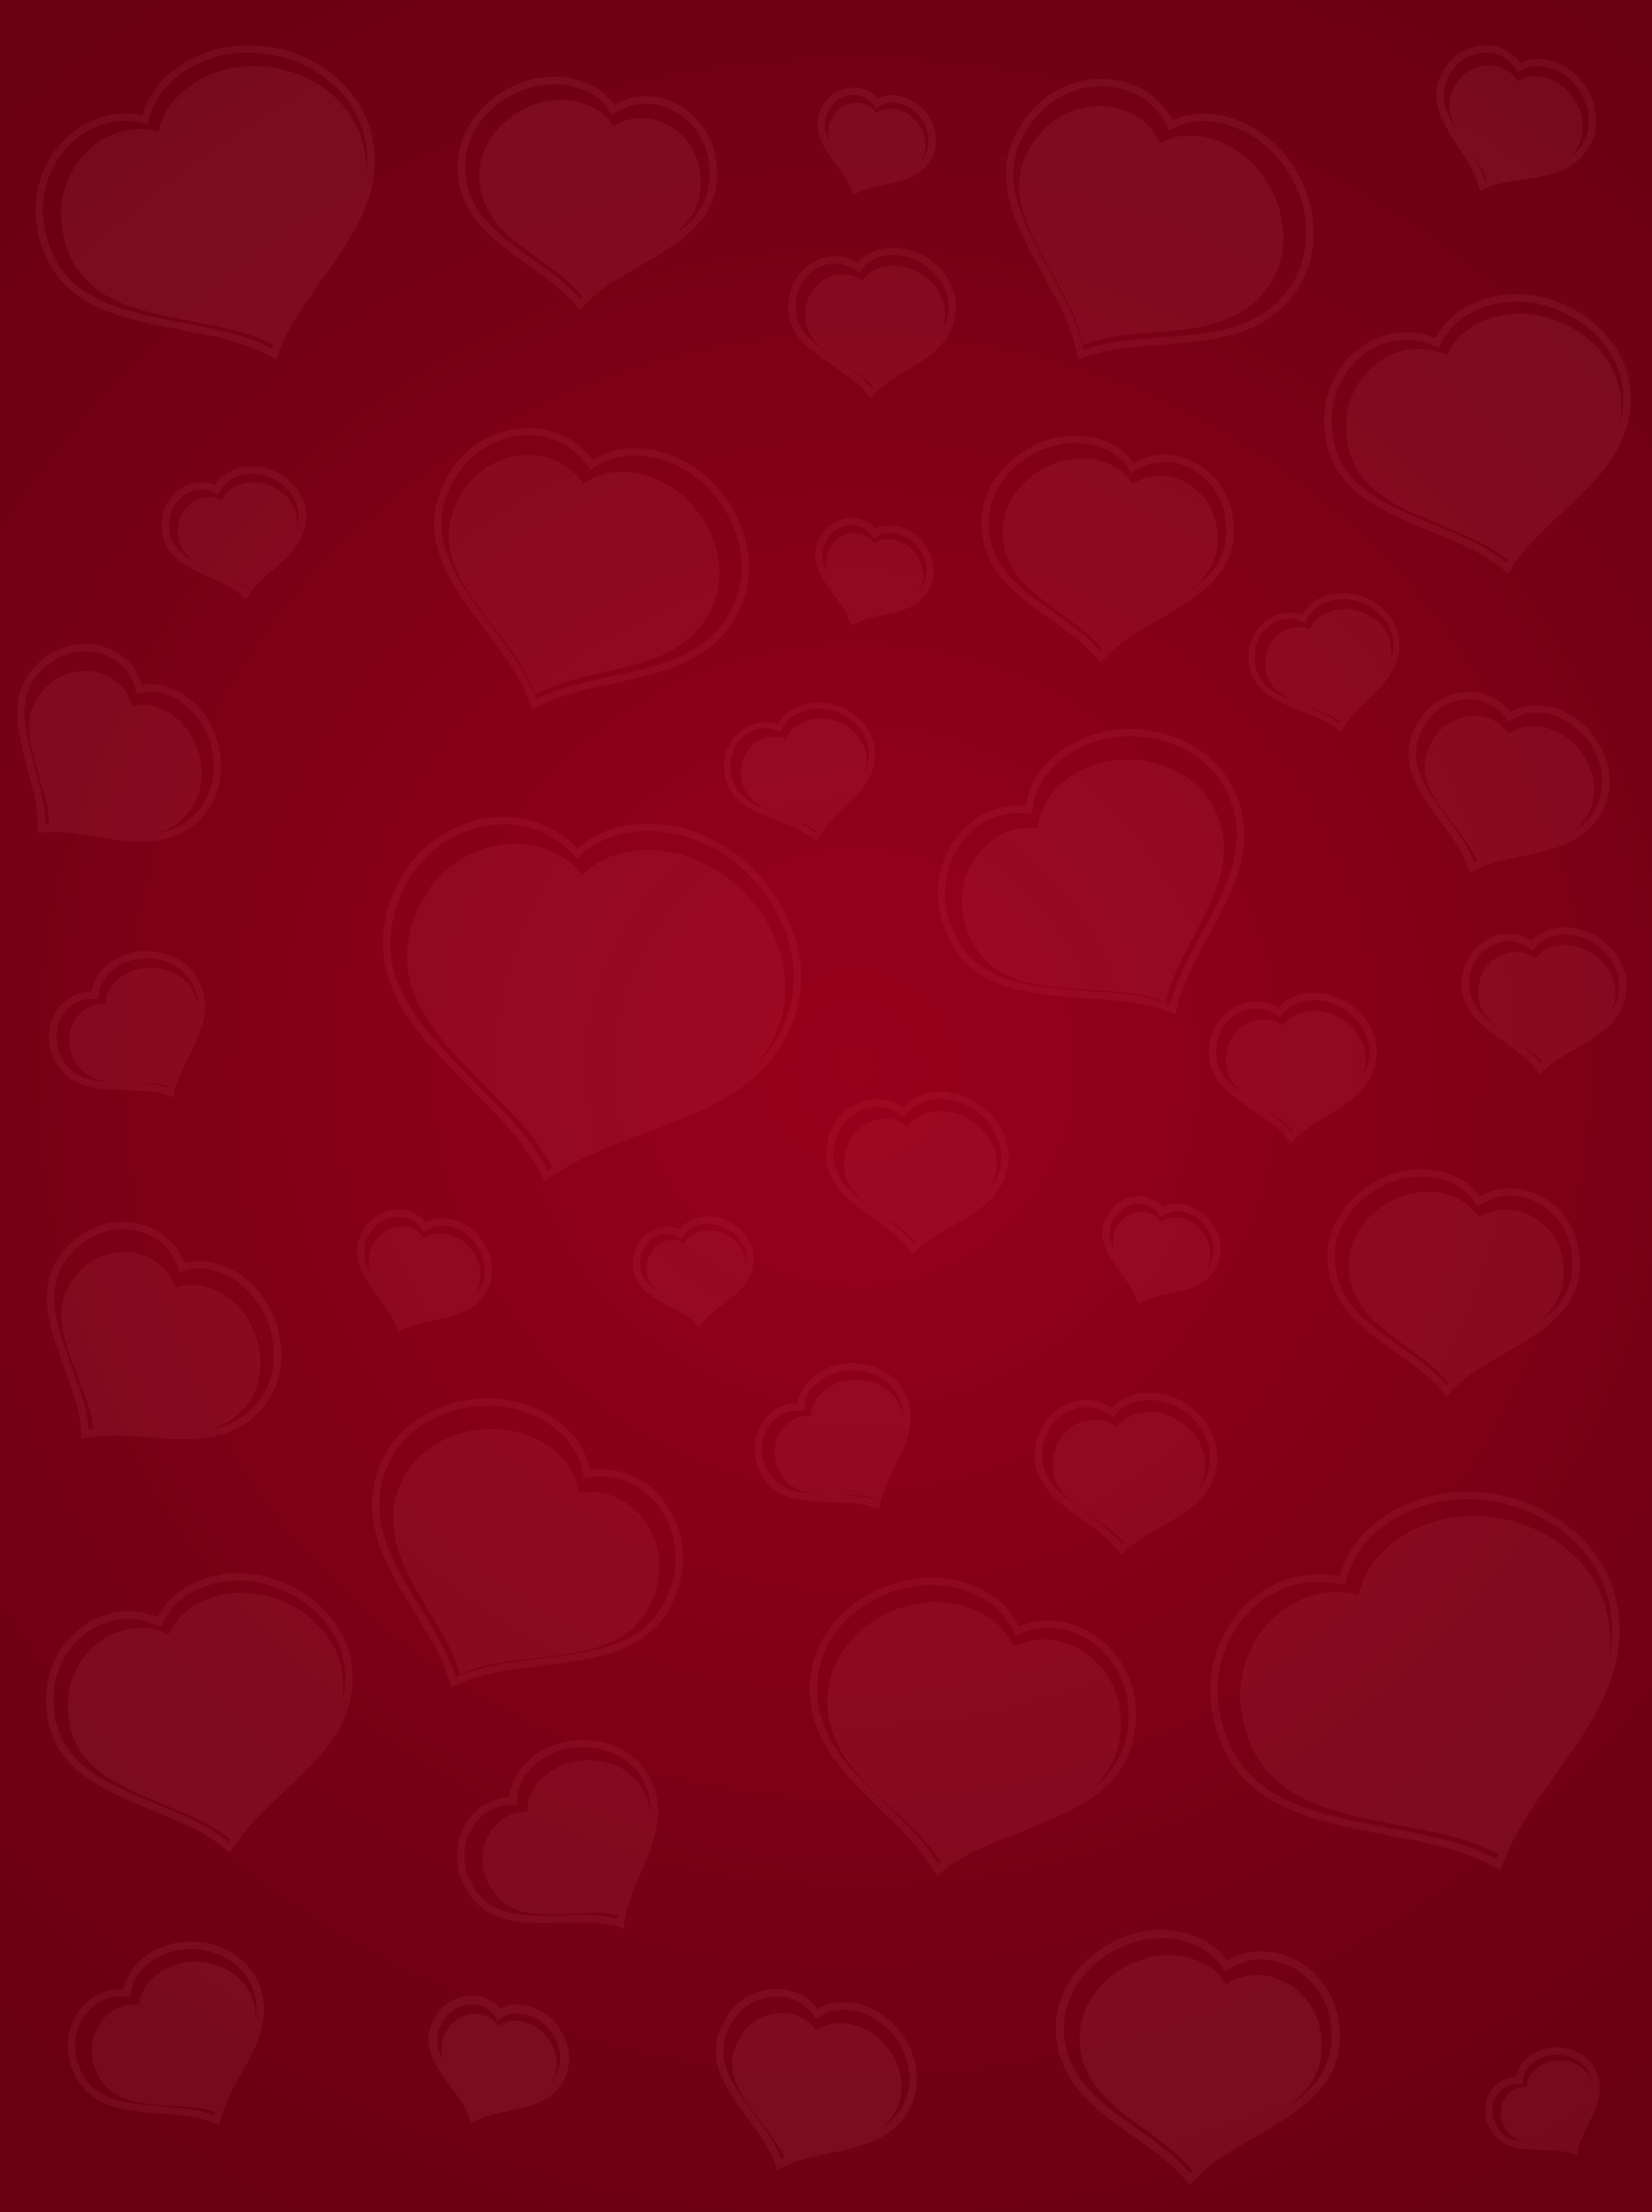 Fall Leaves Desktop Wallpaper Backgrouns Red Valentine S Day Background With Hearts Gallery